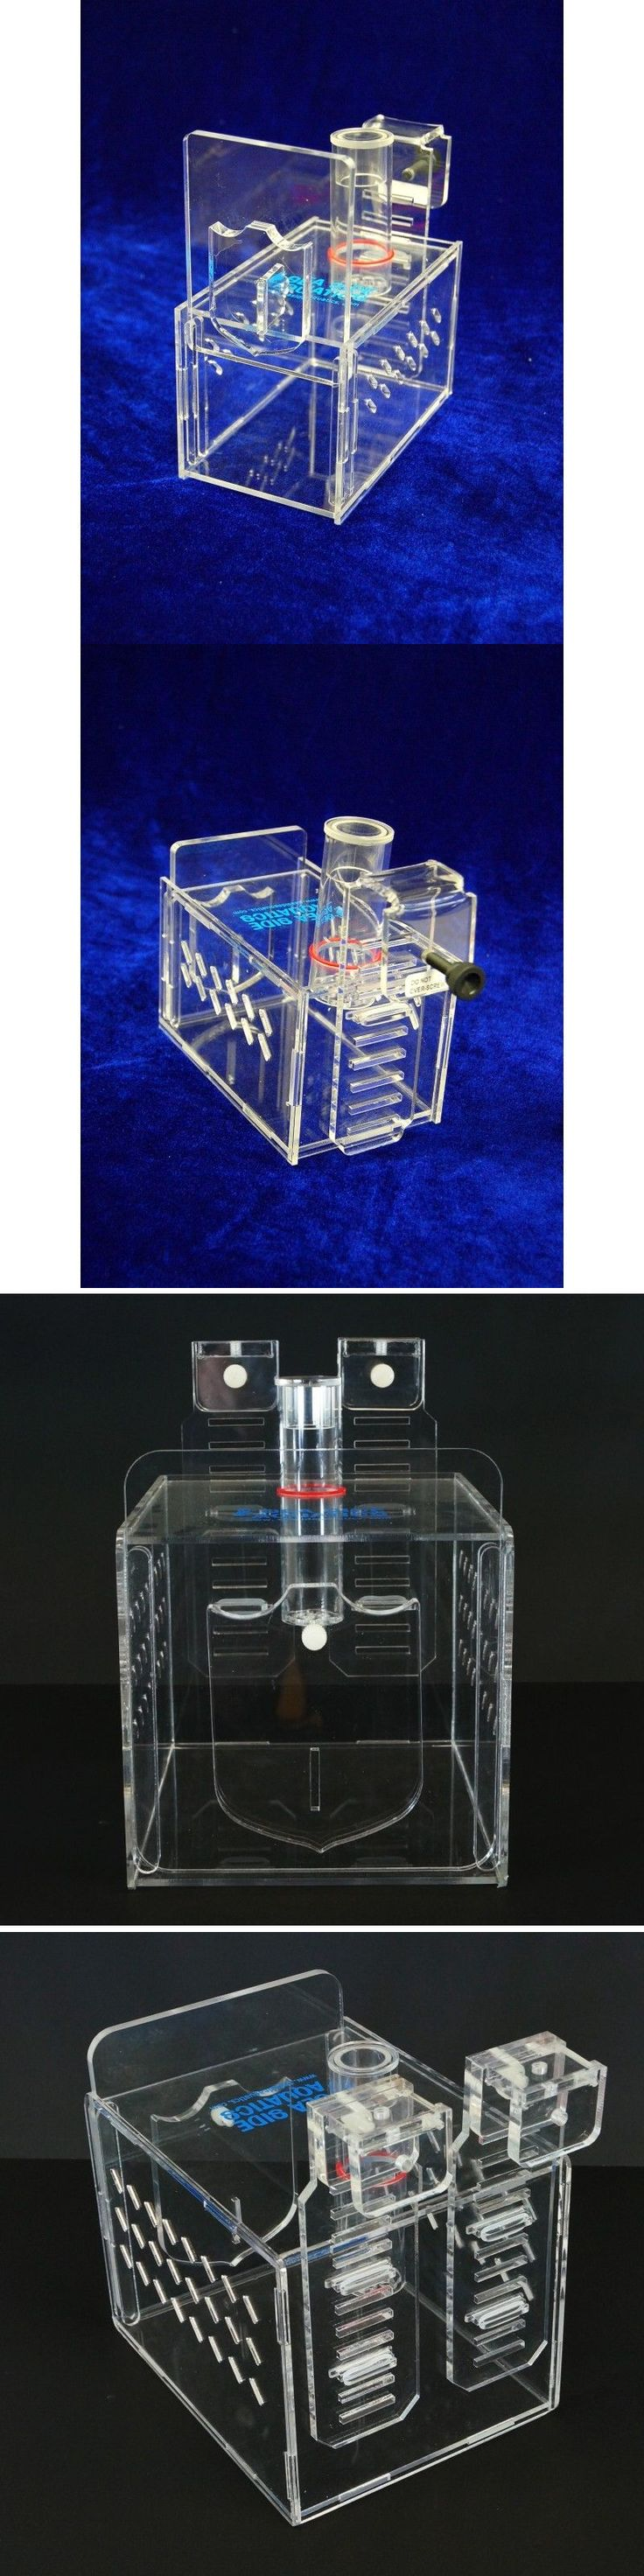 Other Fish and Aquarium Supplies 8444: Sea Side Aquatics Aquarium Fish Trap Hang On Back Sizes: Small, Medium, Large. BUY IT NOW ONLY: $69.95